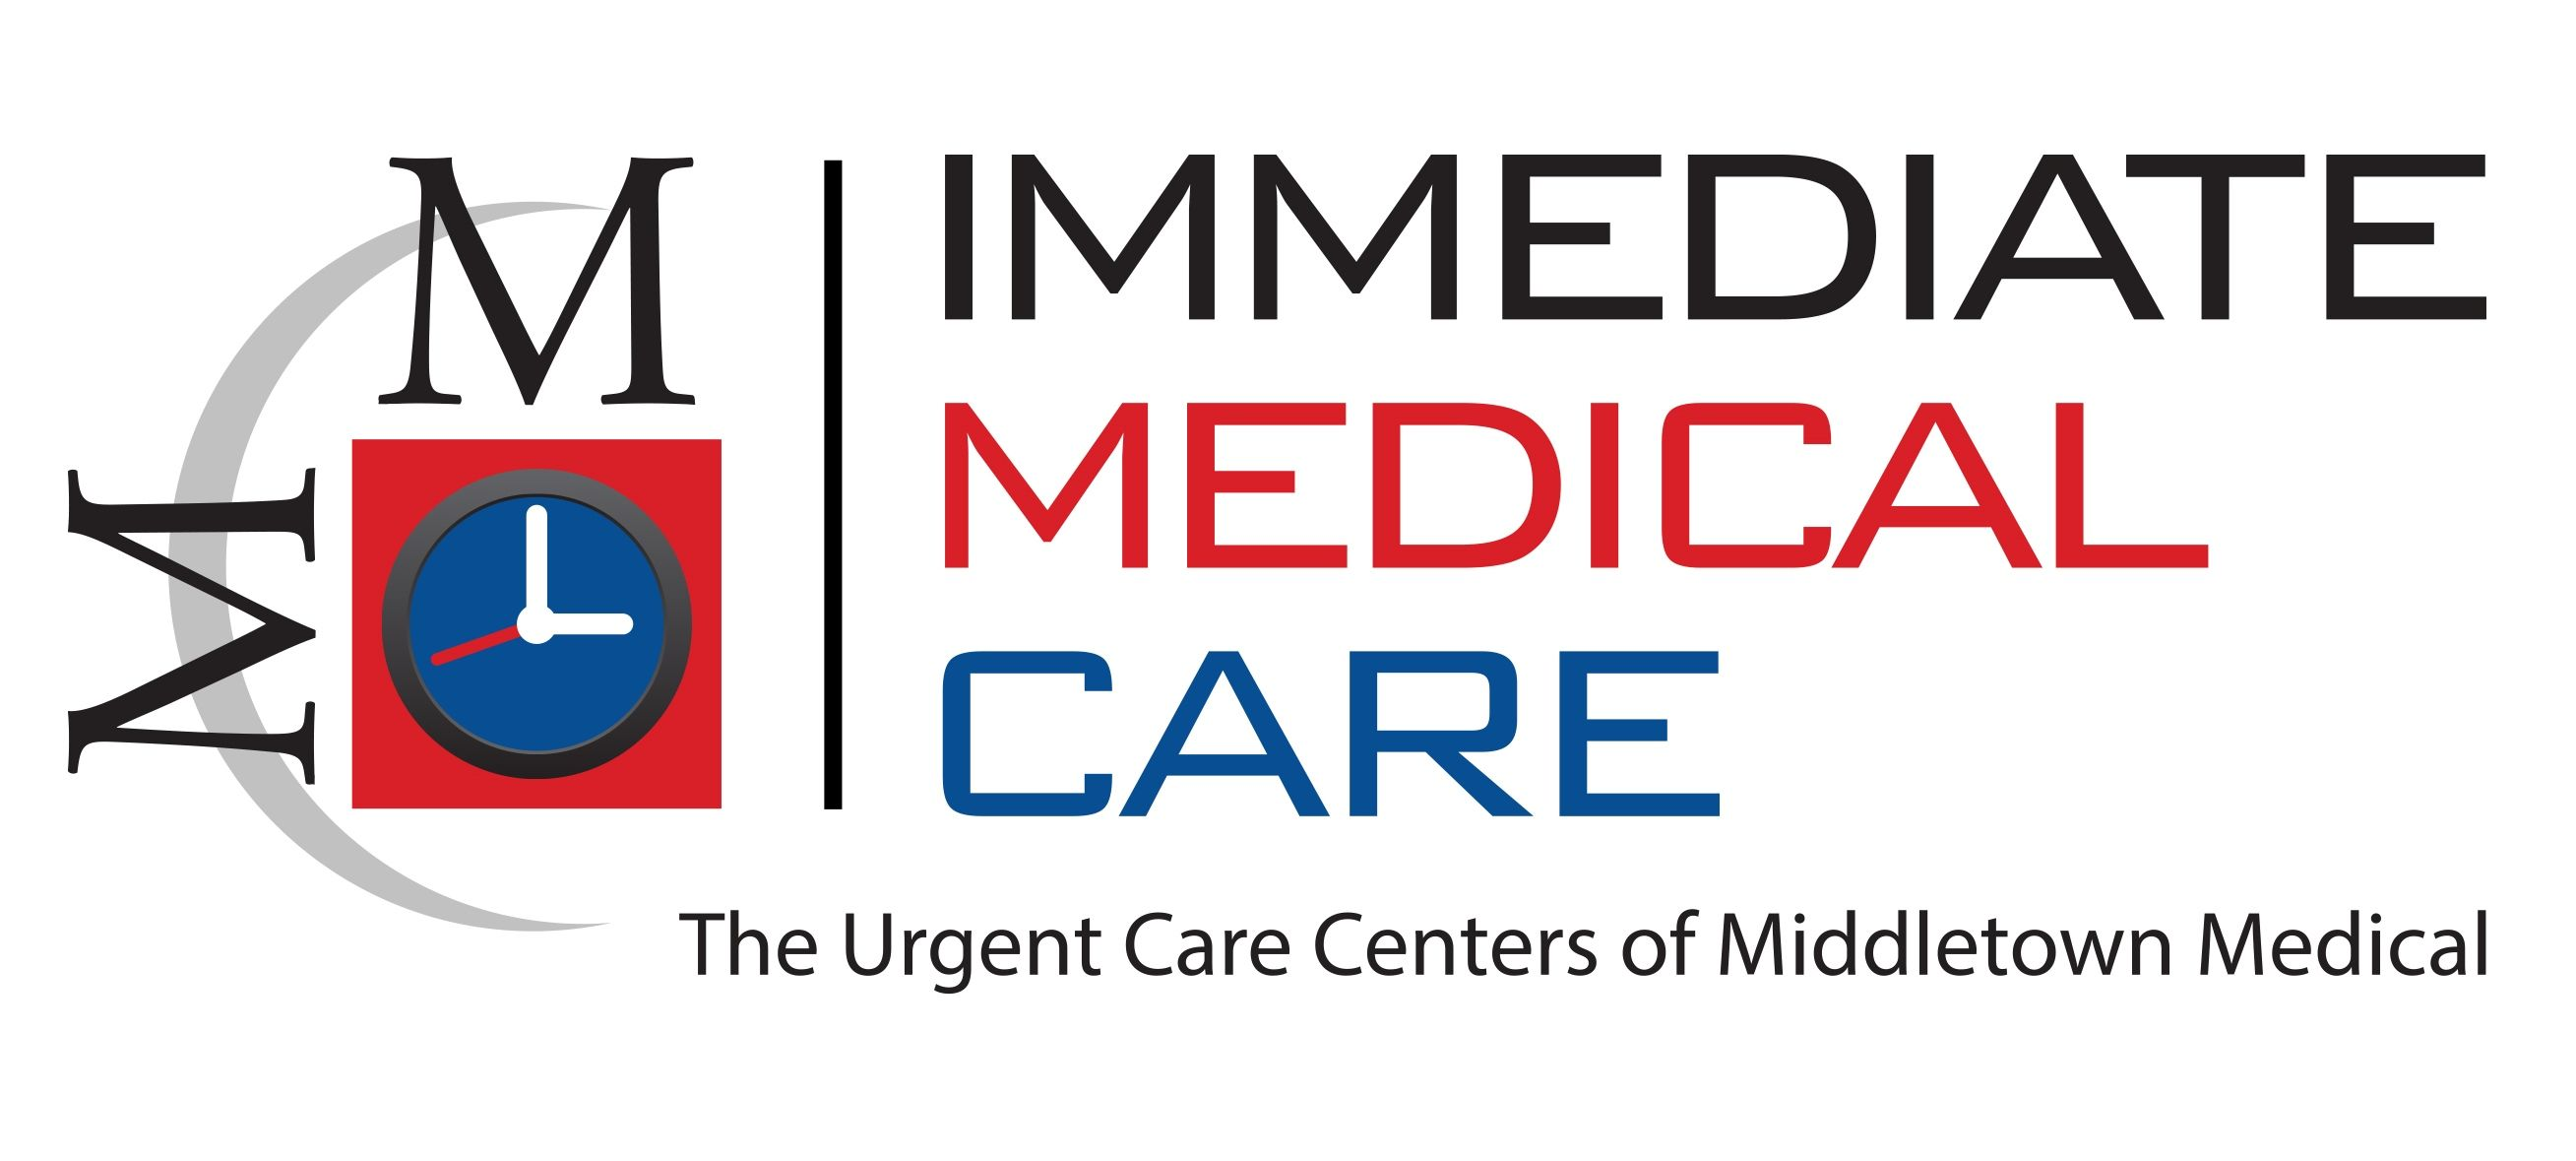 Middletown medical introduces worryfree pricing for